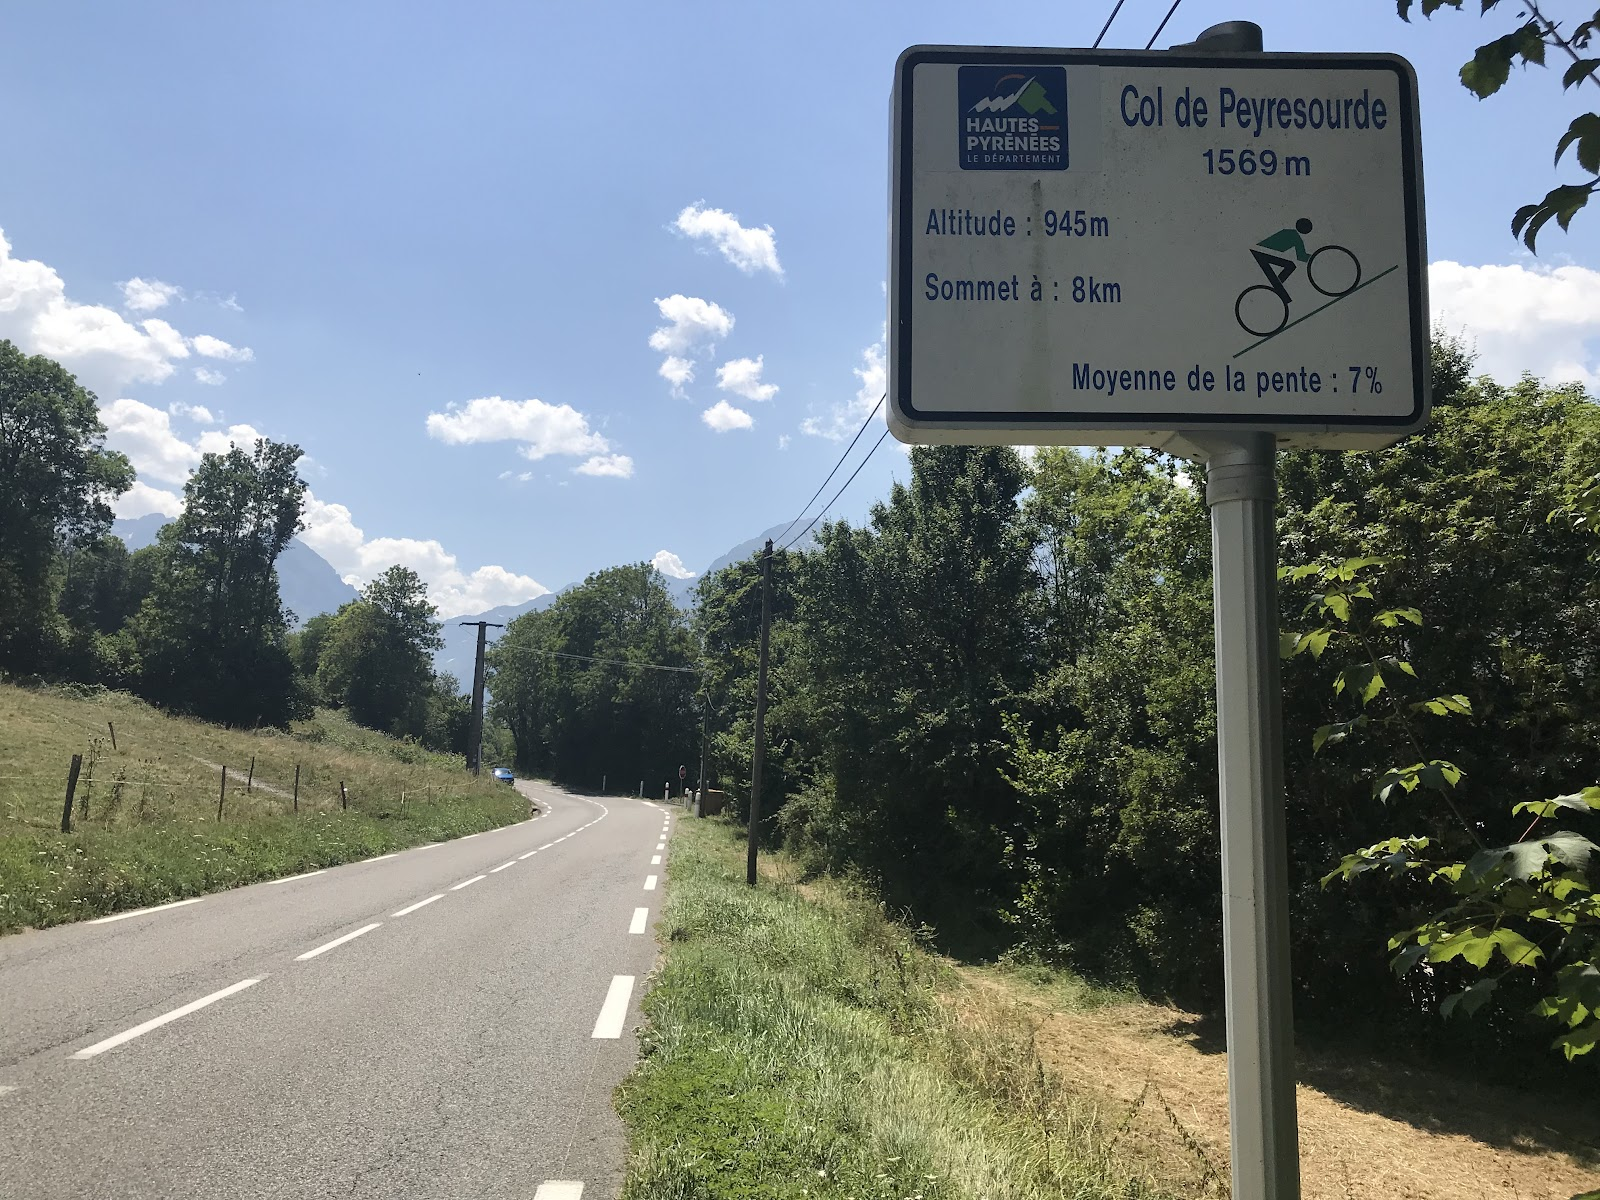 Biking Col de Peyresourde from Avajan  - col sign and roadway